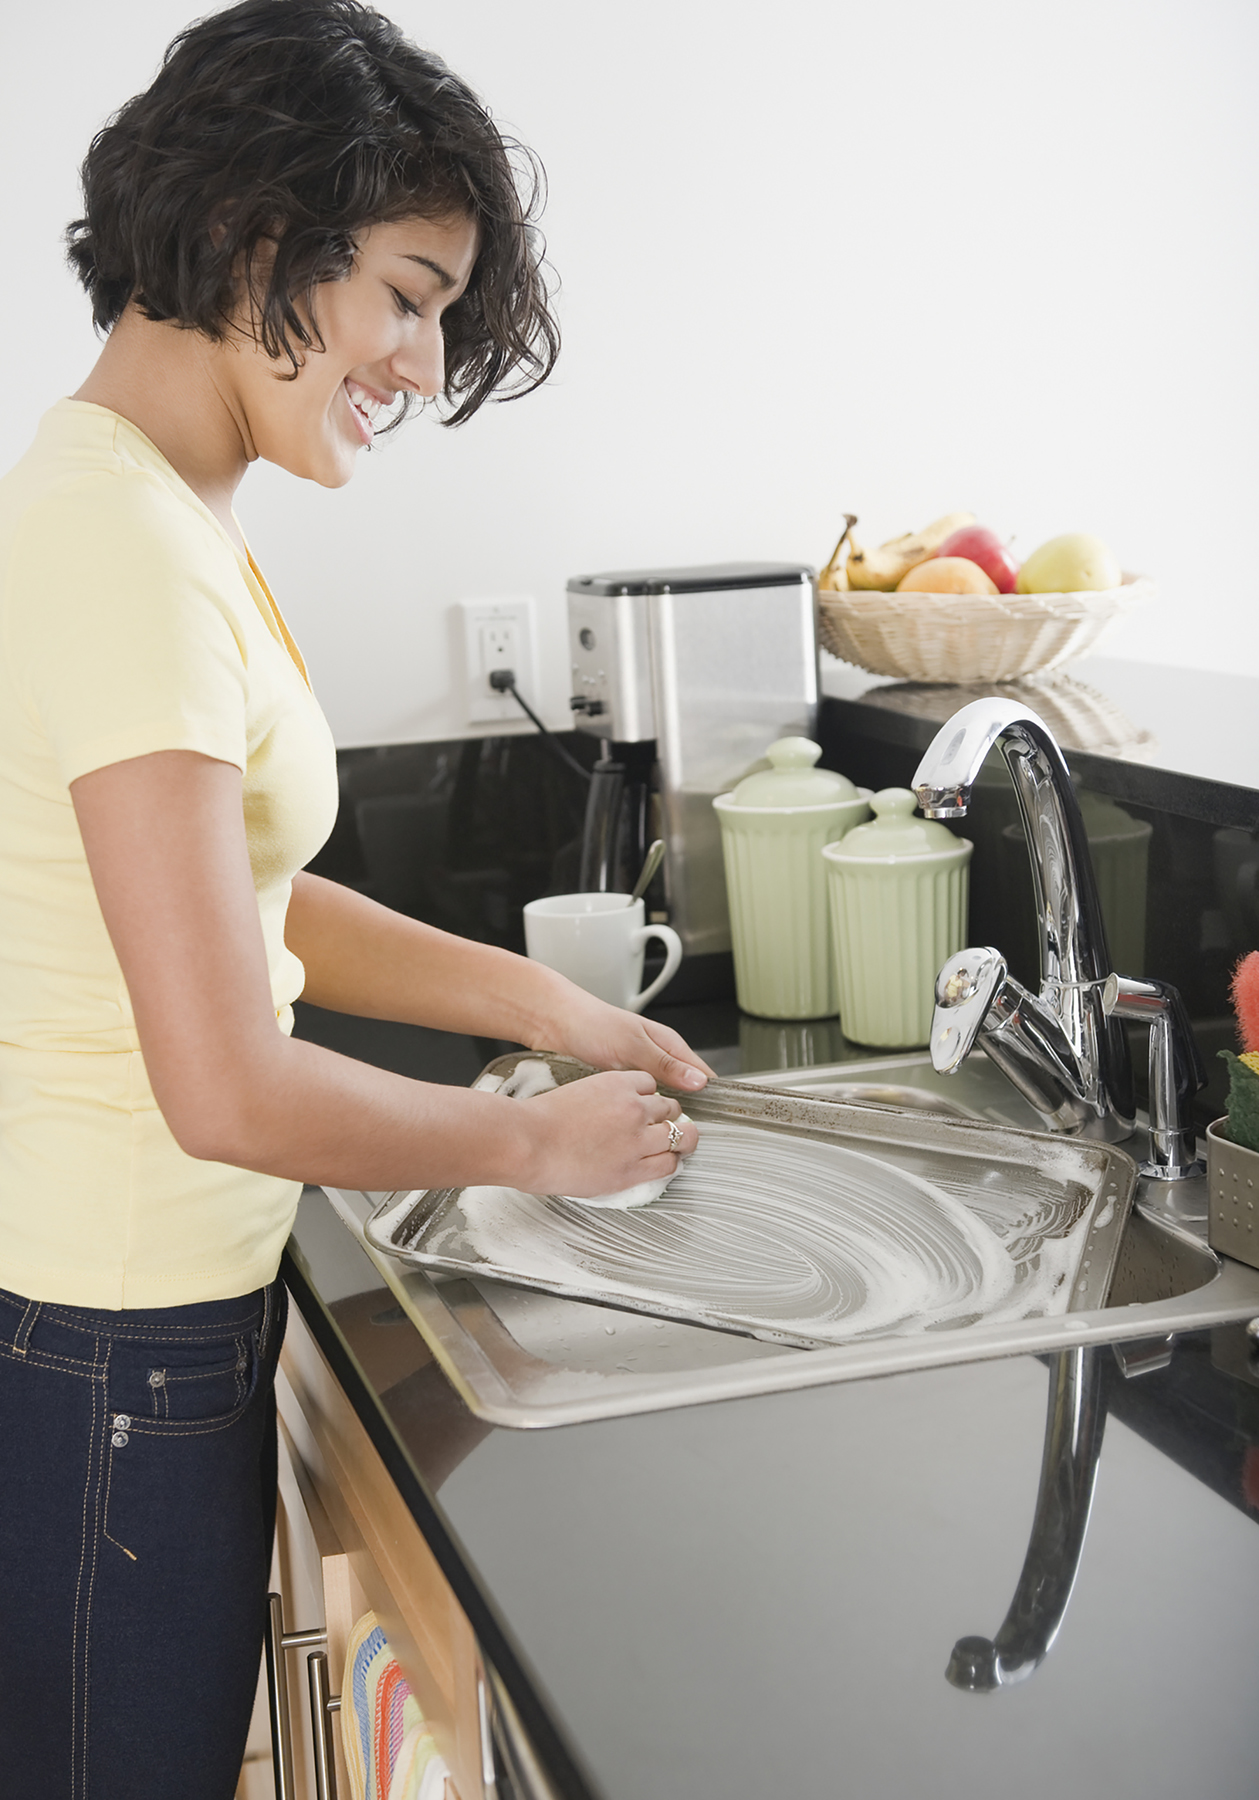 Latina woman washing dishes at sink